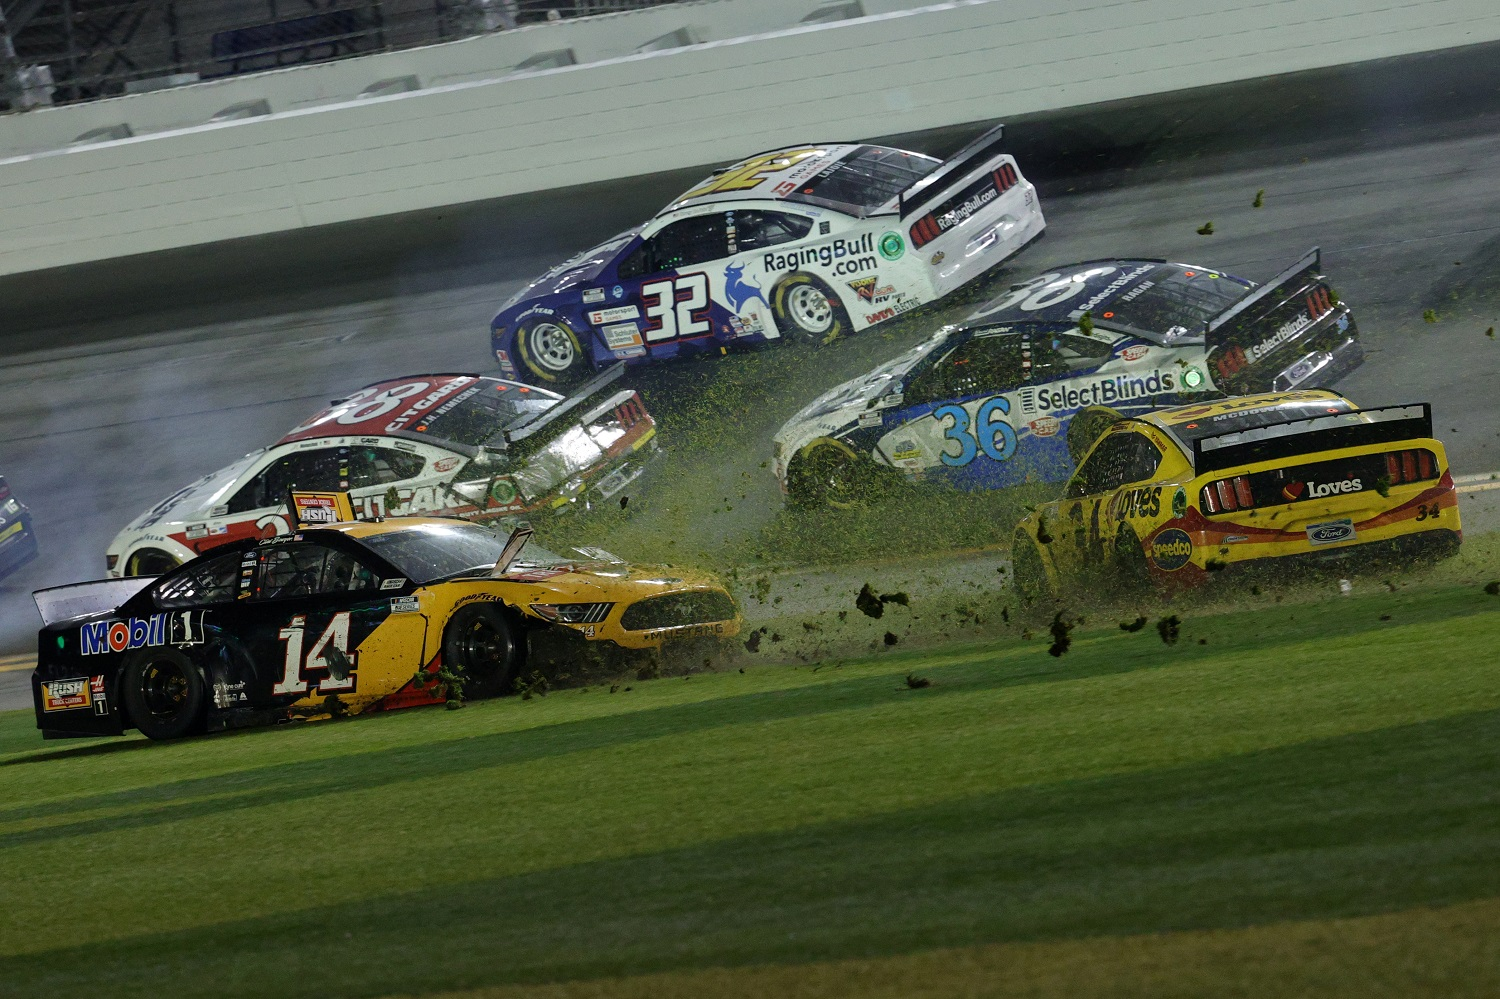 'The Big One' refers to major wrecks in NASCAR Cup Series races